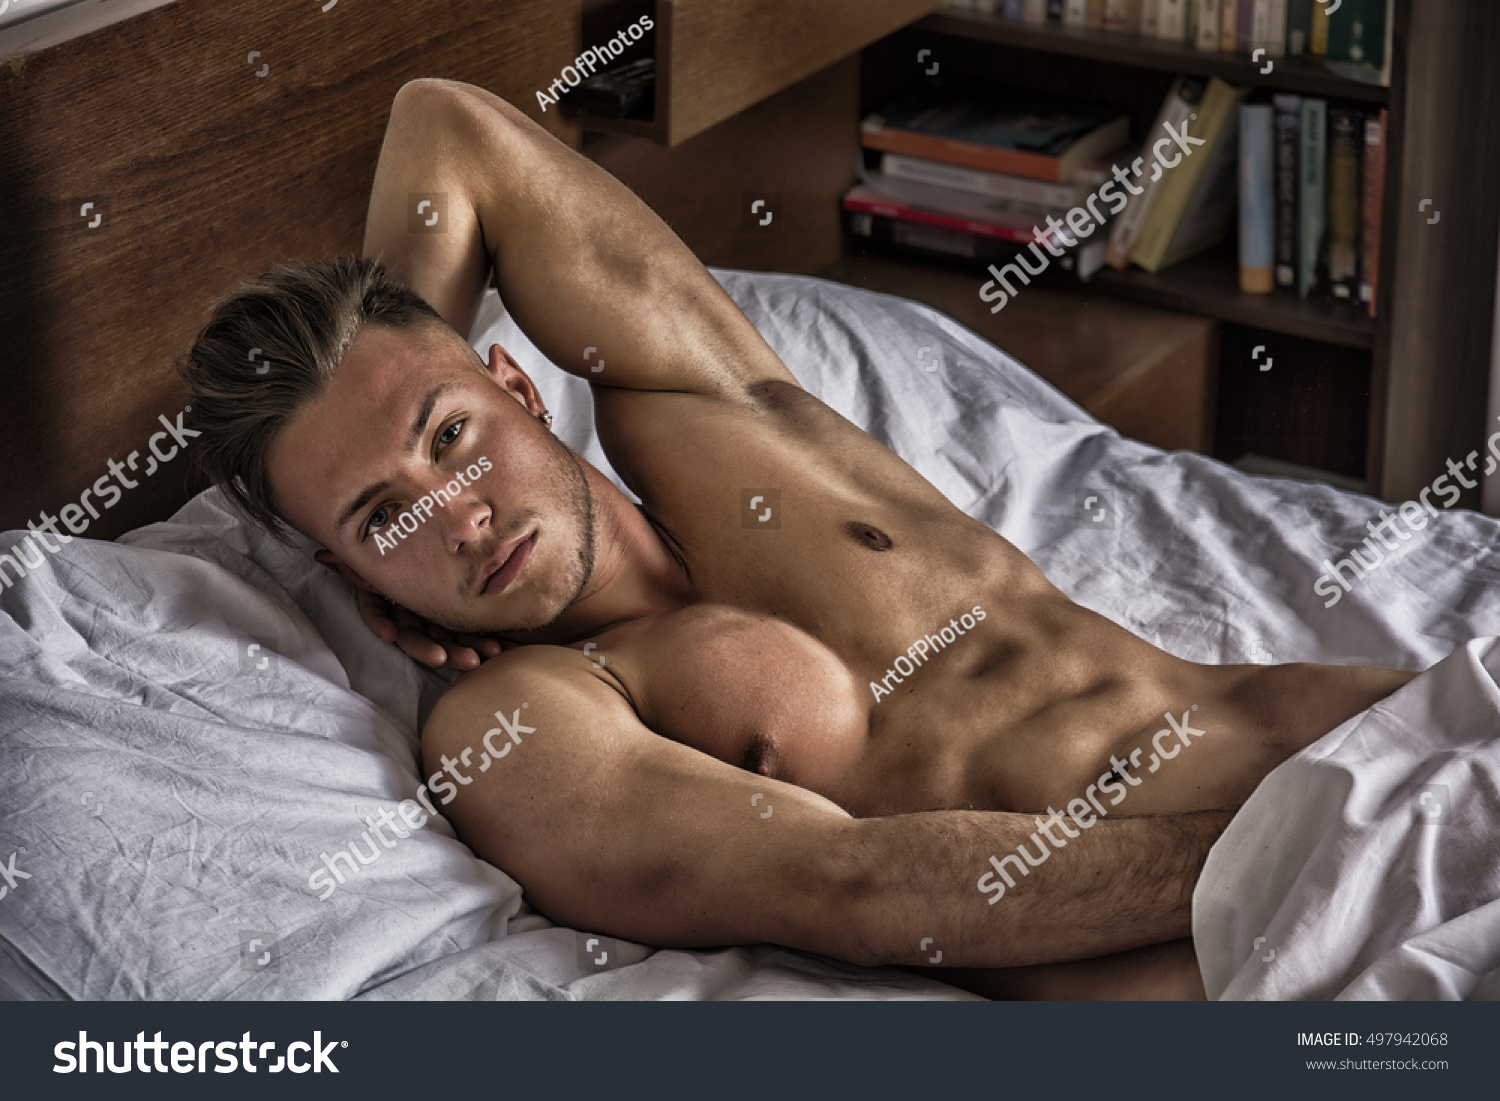 guy nude in bed